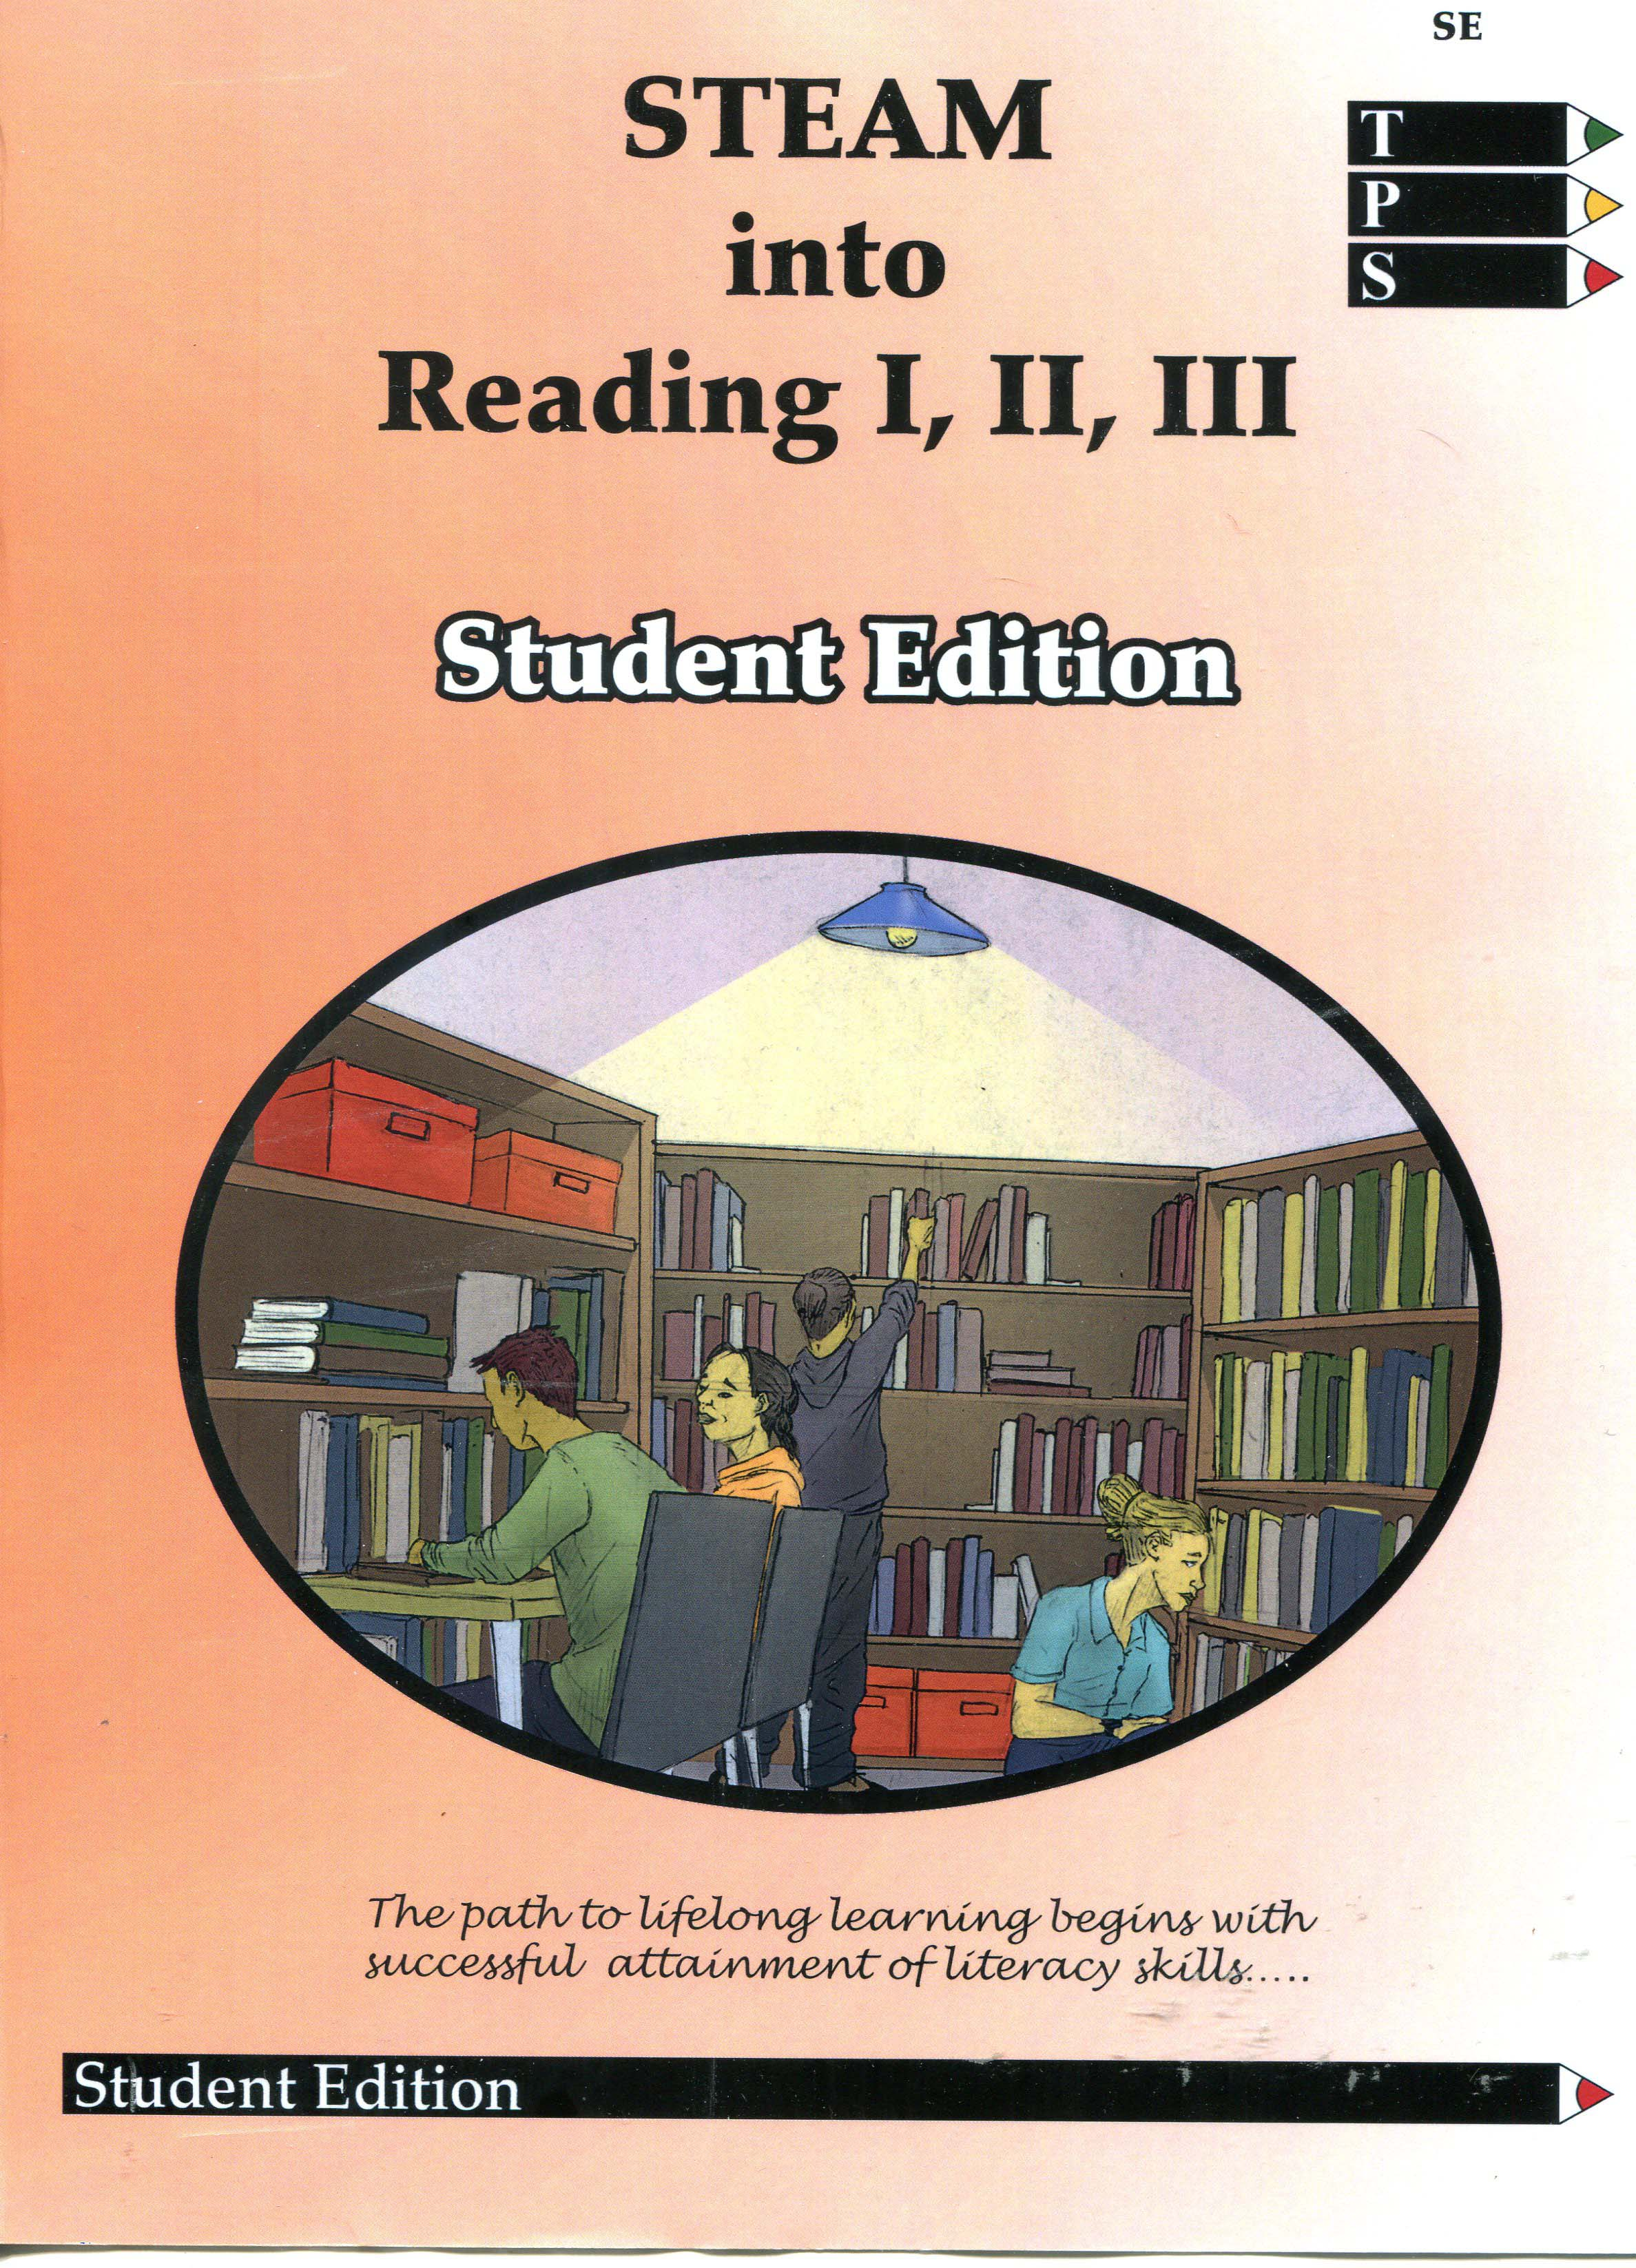 STEAM Into Reading I, II, III Student Edition